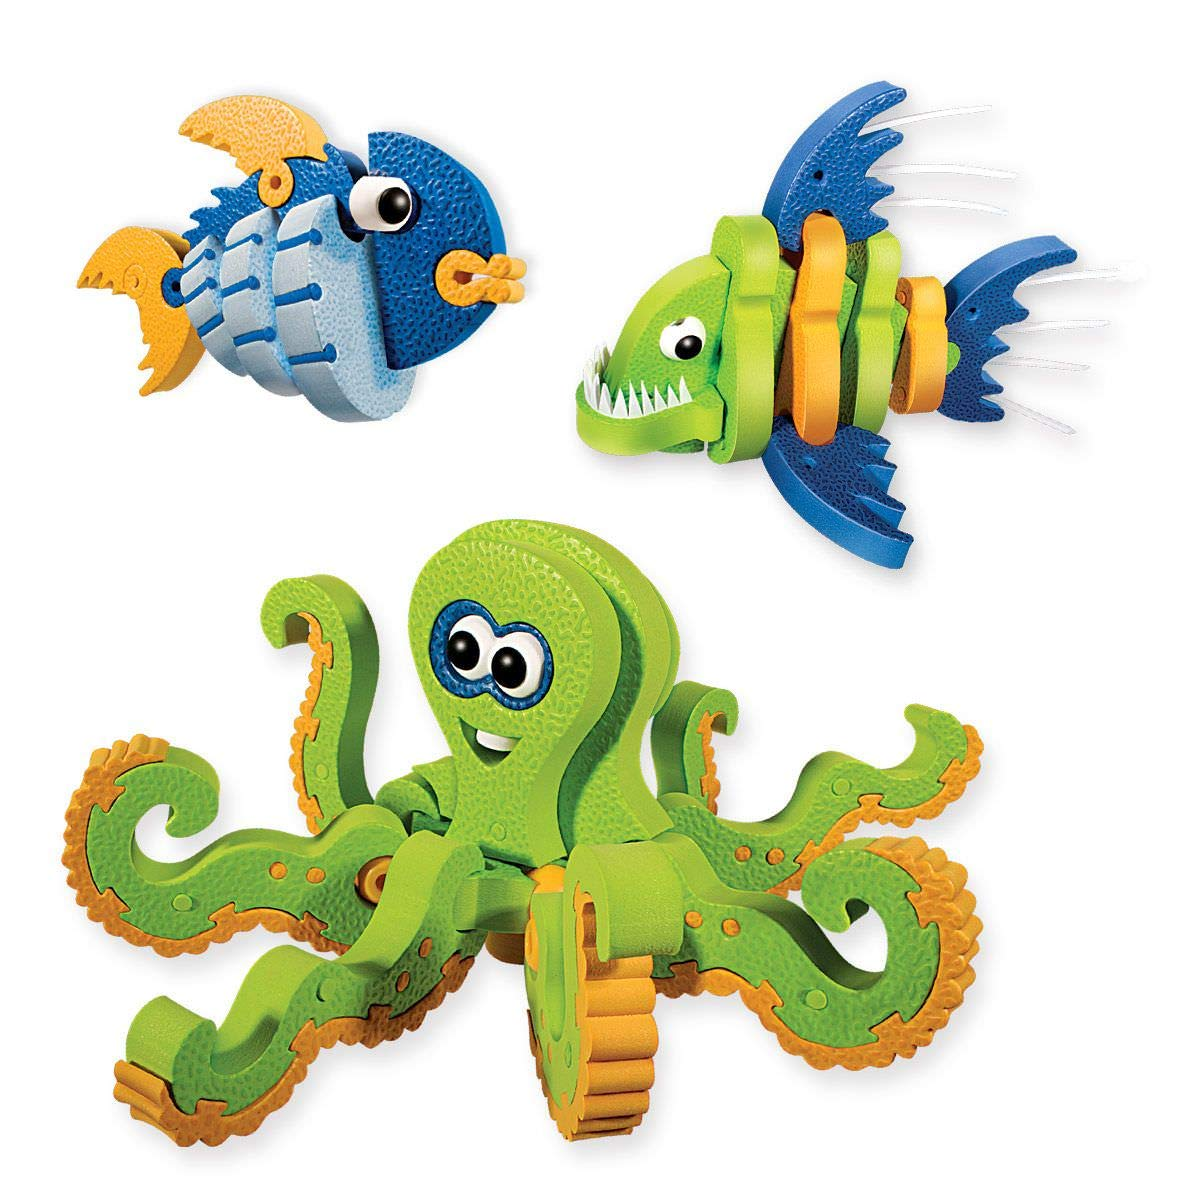 Seaworld Toys Kids Crafts for Boys Style Me Up Bloco SMU-30241 PURE /& CO LTD Foam Shark Building Toy Marine Creatures Toy Set